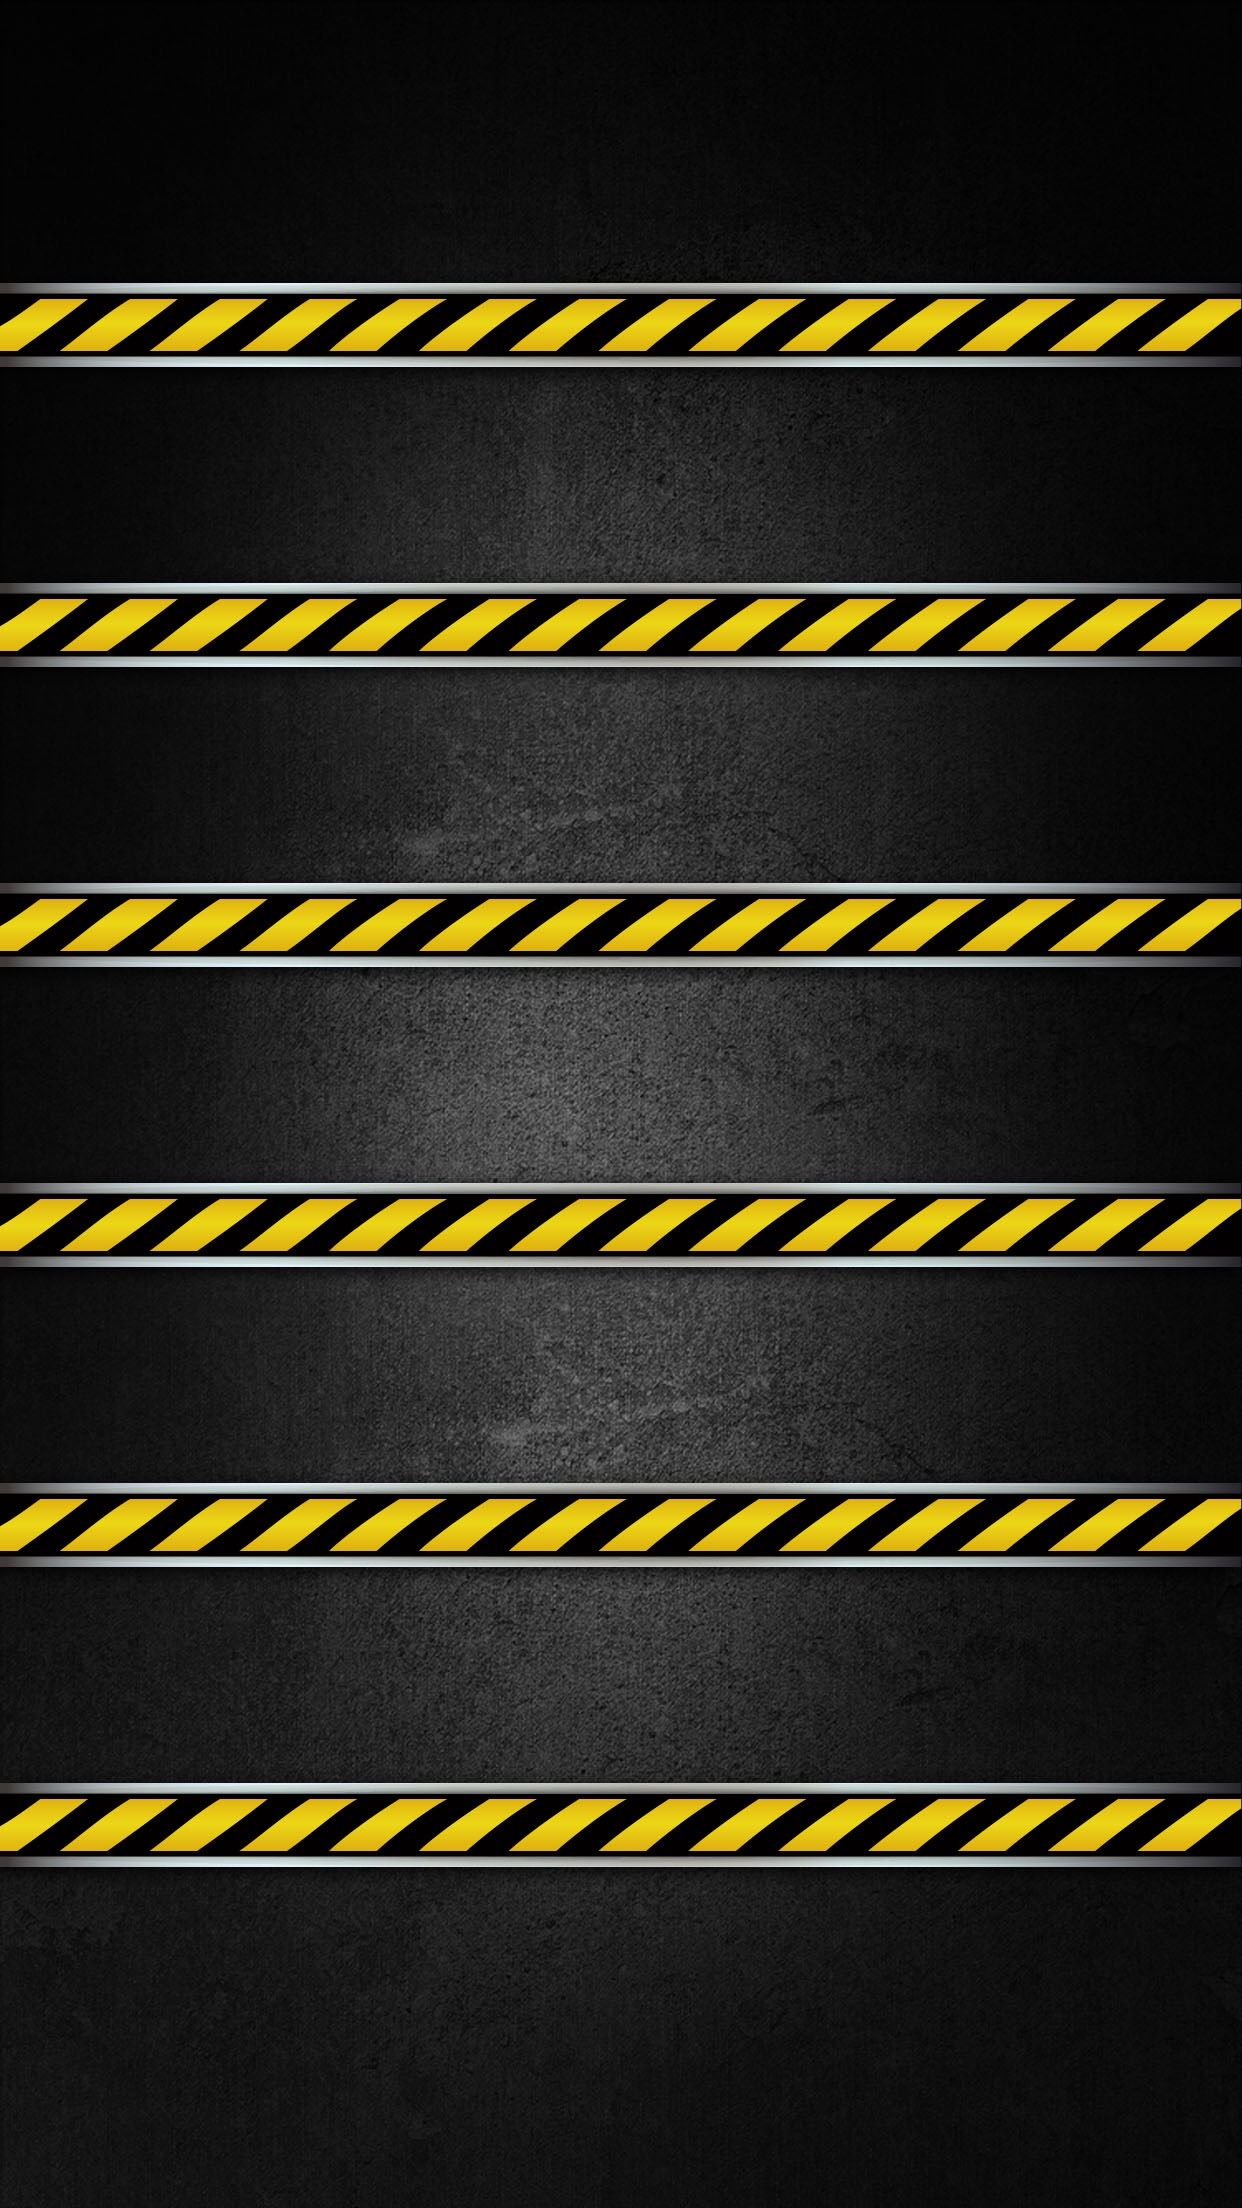 a†'a†'tap and get the free app shelves stylish black warning danger line minimalistic